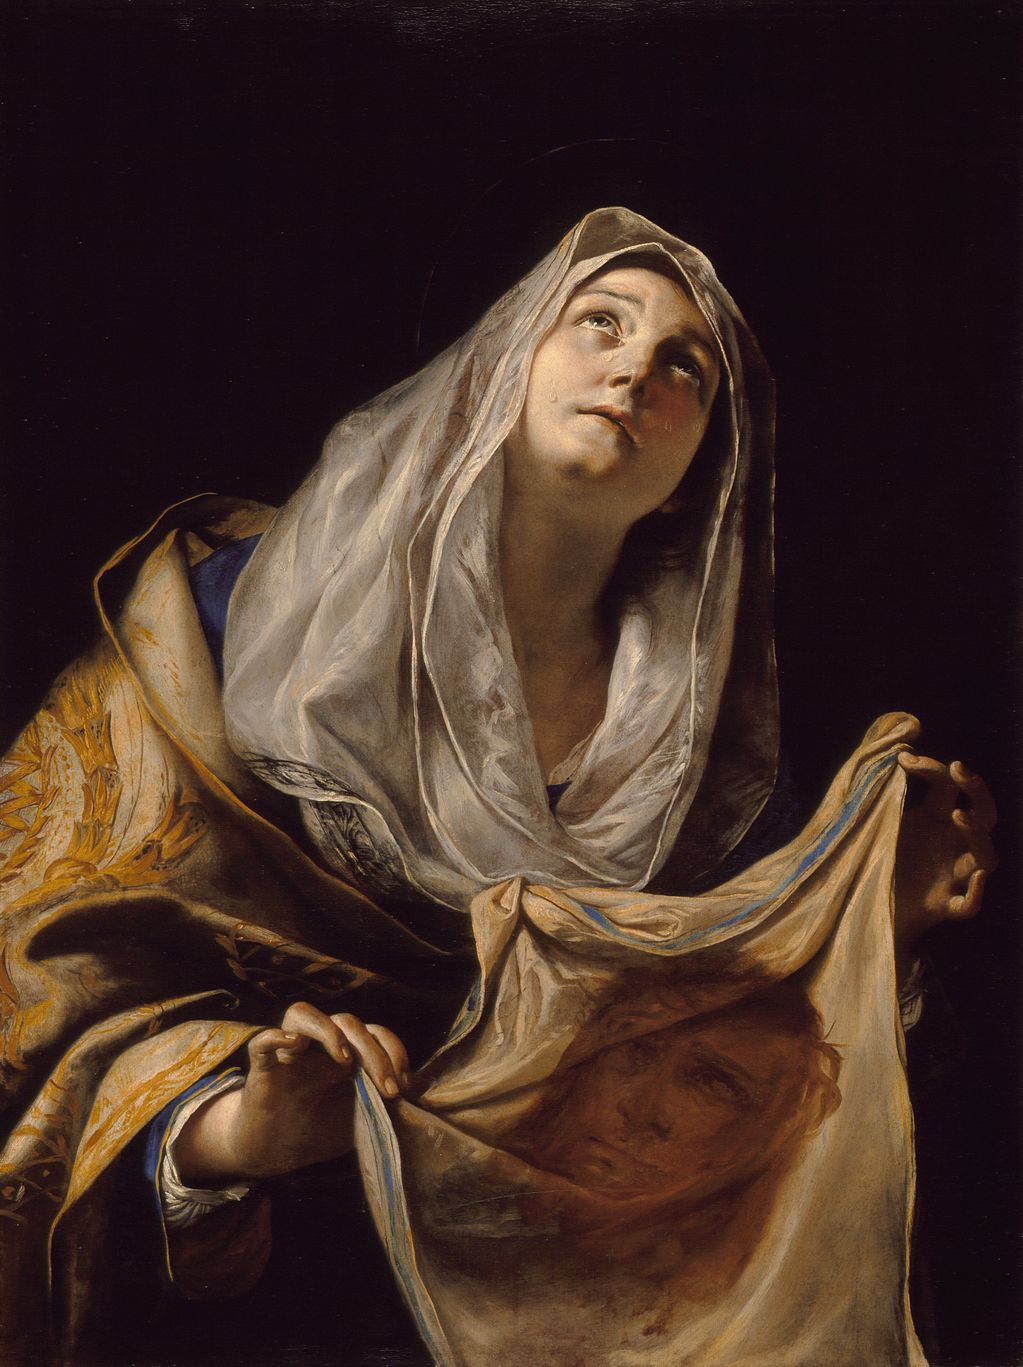 Mattia Preti (1613 – 1699) Saint Veronica with the Veil